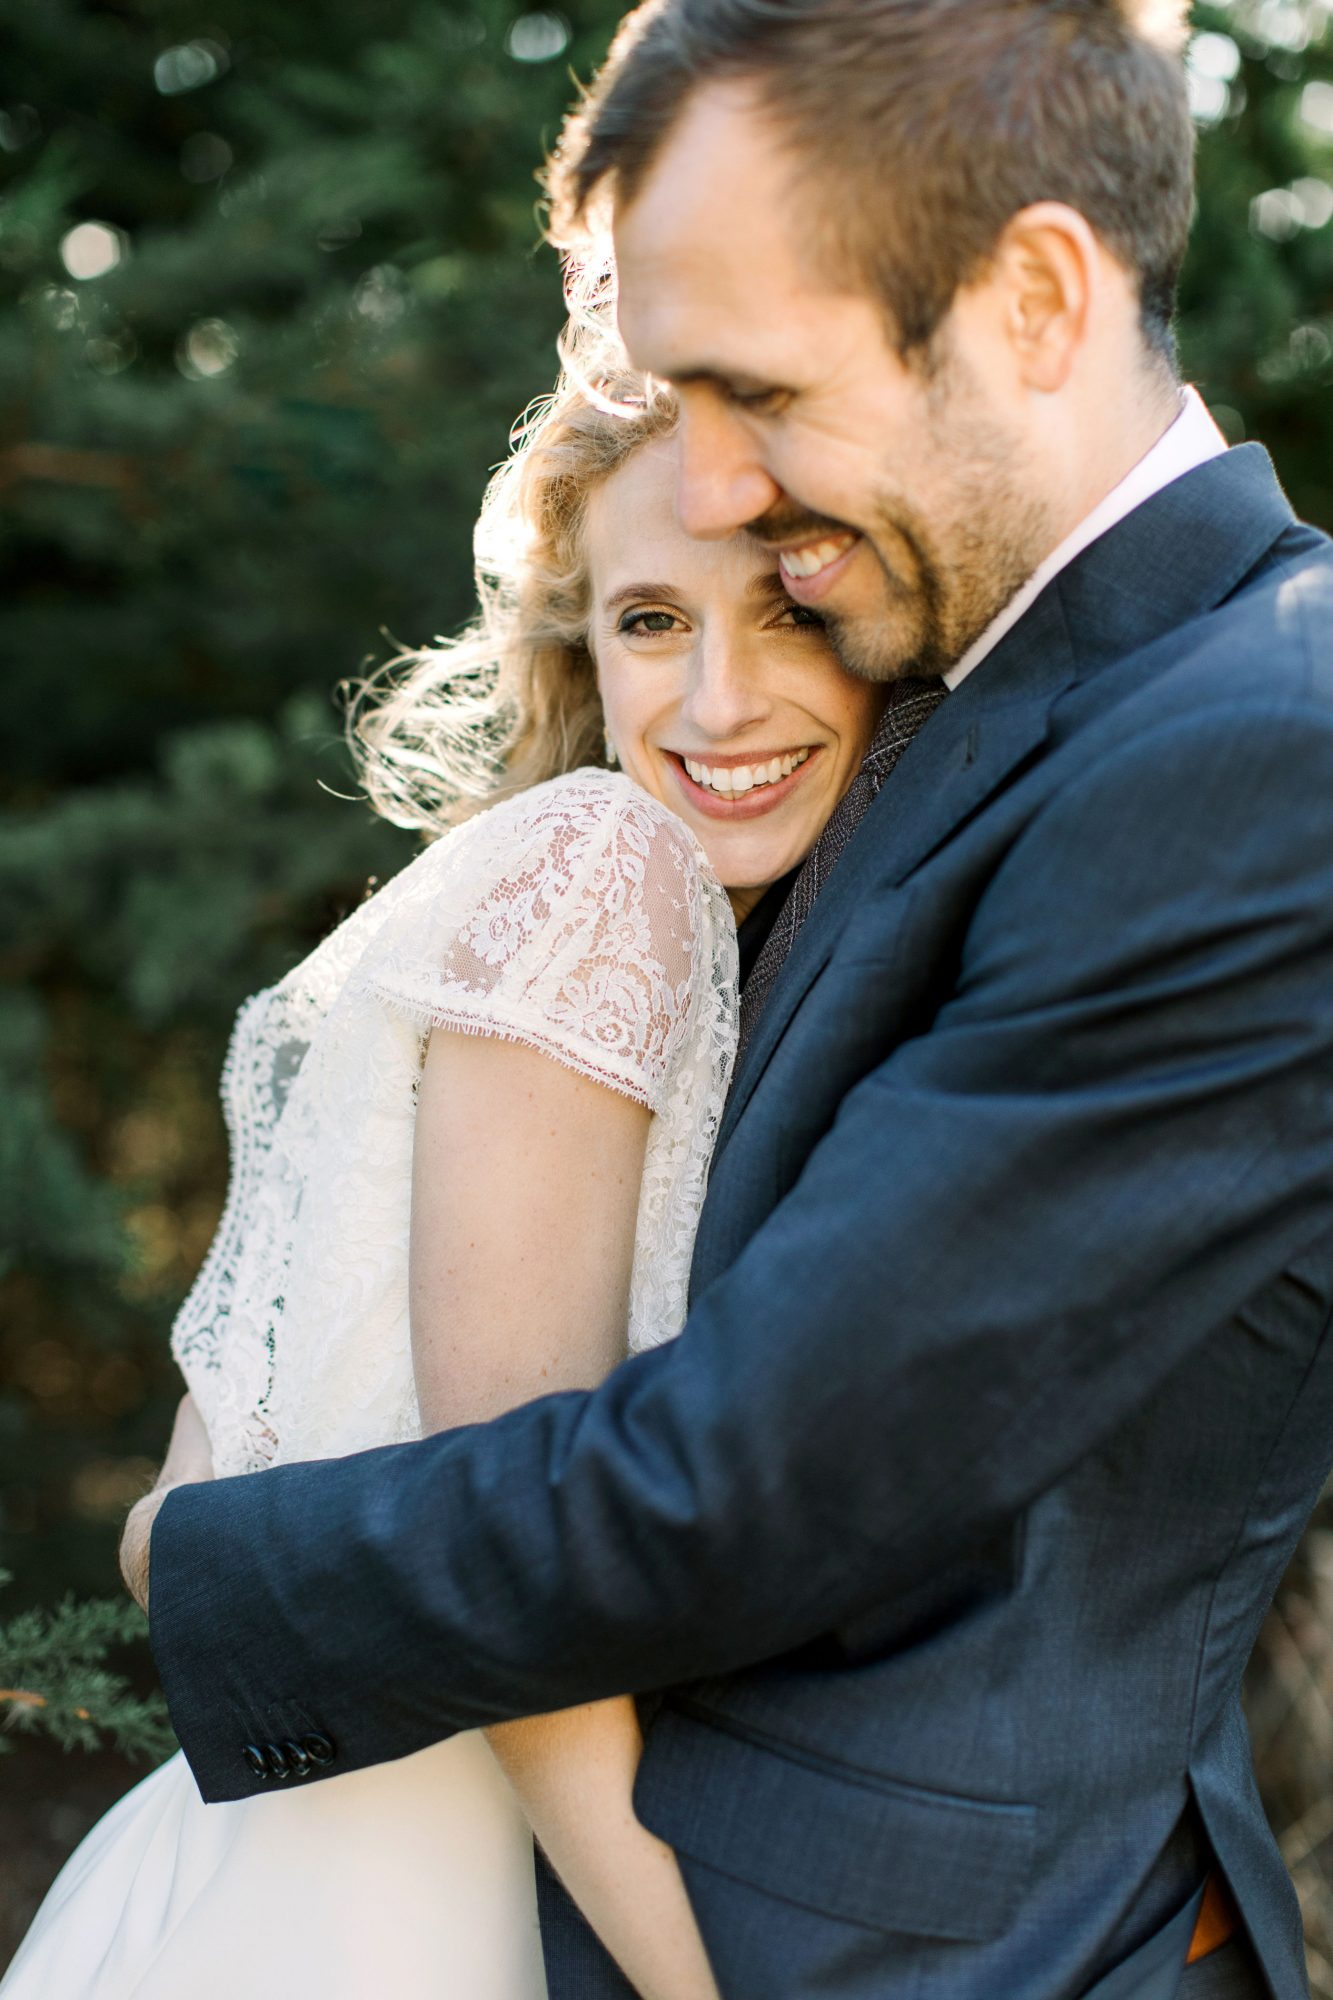 gillian marcus wedding couple smile embrace